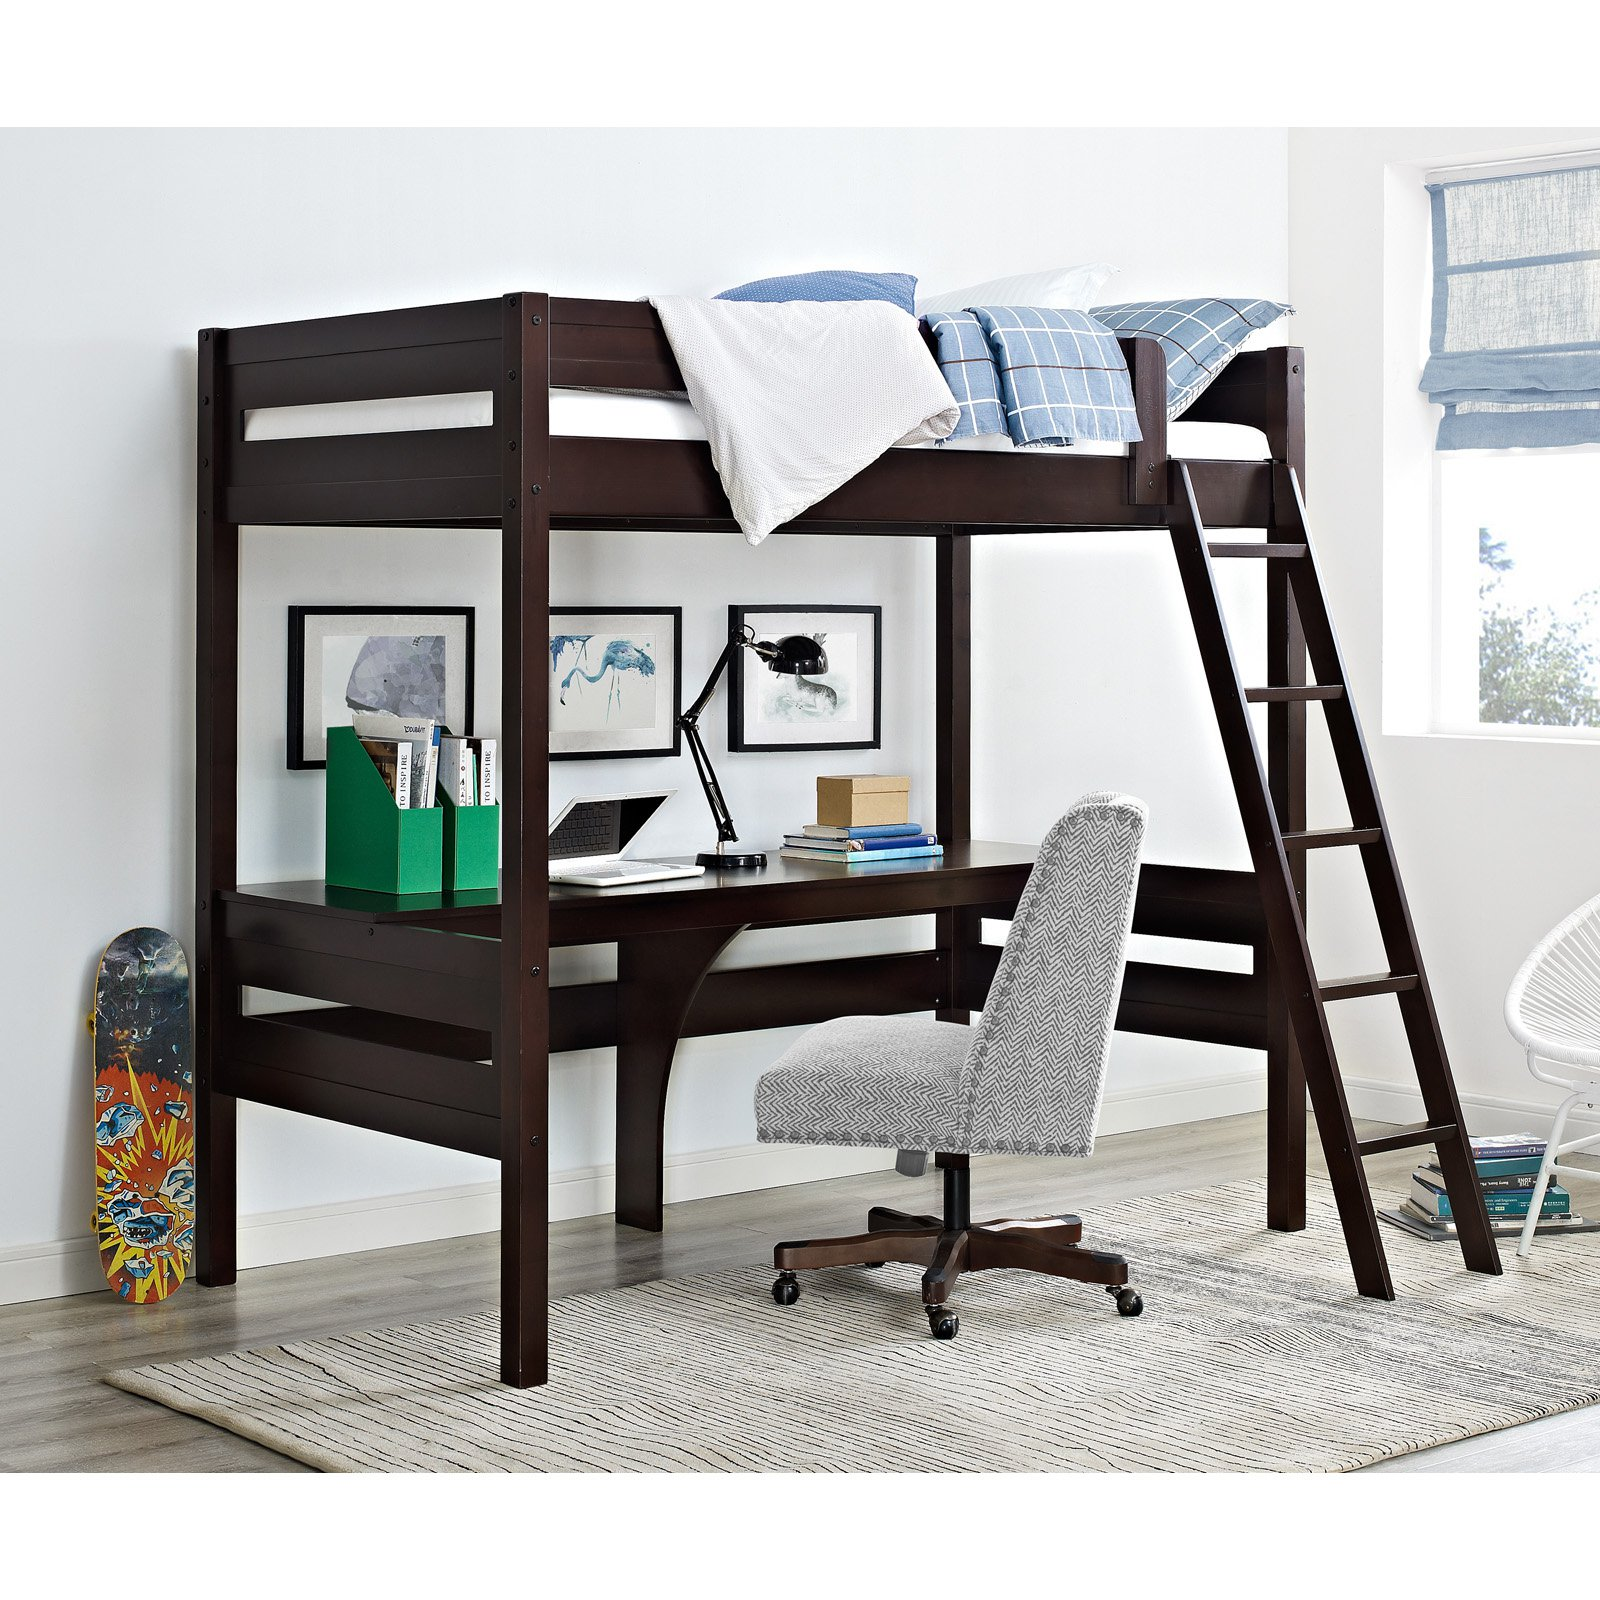 Dorel Living Harlan Twin Wood Loft Bed with Desk, Multiple Colors